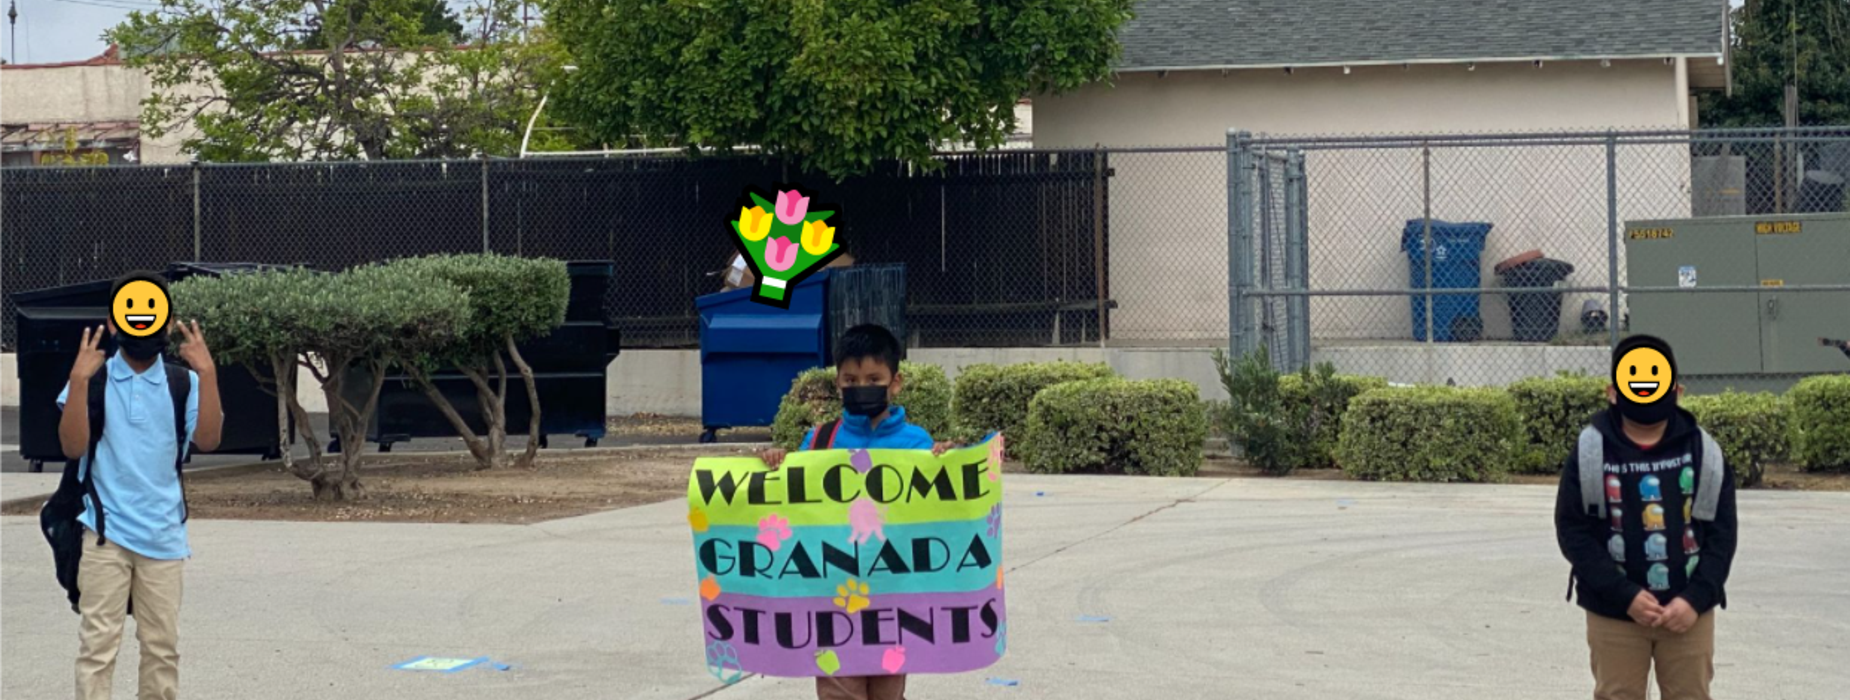 Granada students welcomed back for in-person learning